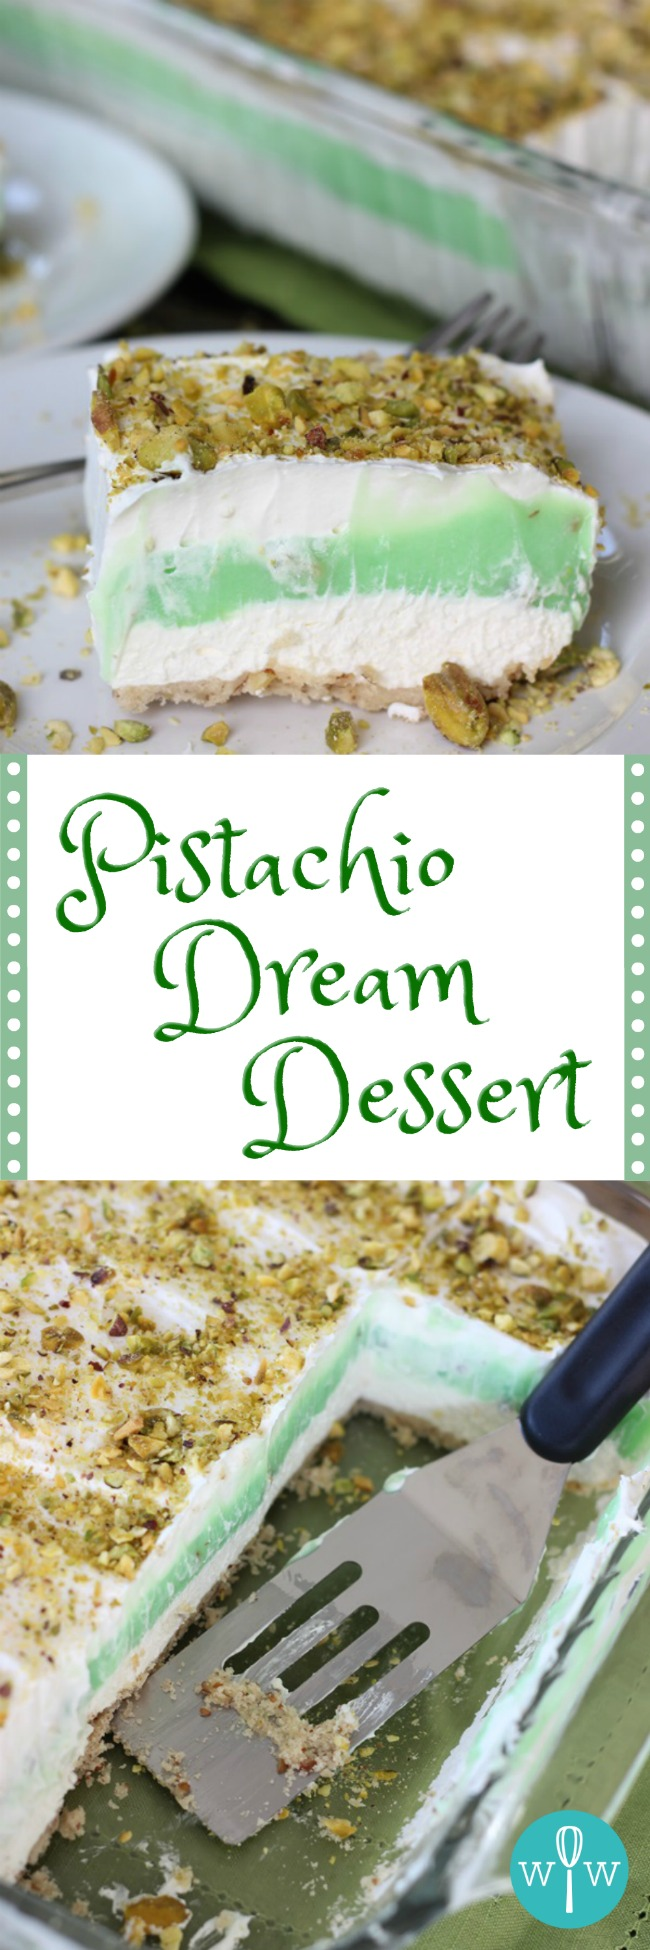 Pistachio Dream Dessert - A delightful pecan crust covered in layers of whipped topping, creamy pistachio pudding, and crunchy chopped pistachios. | www.worthwhisking.com